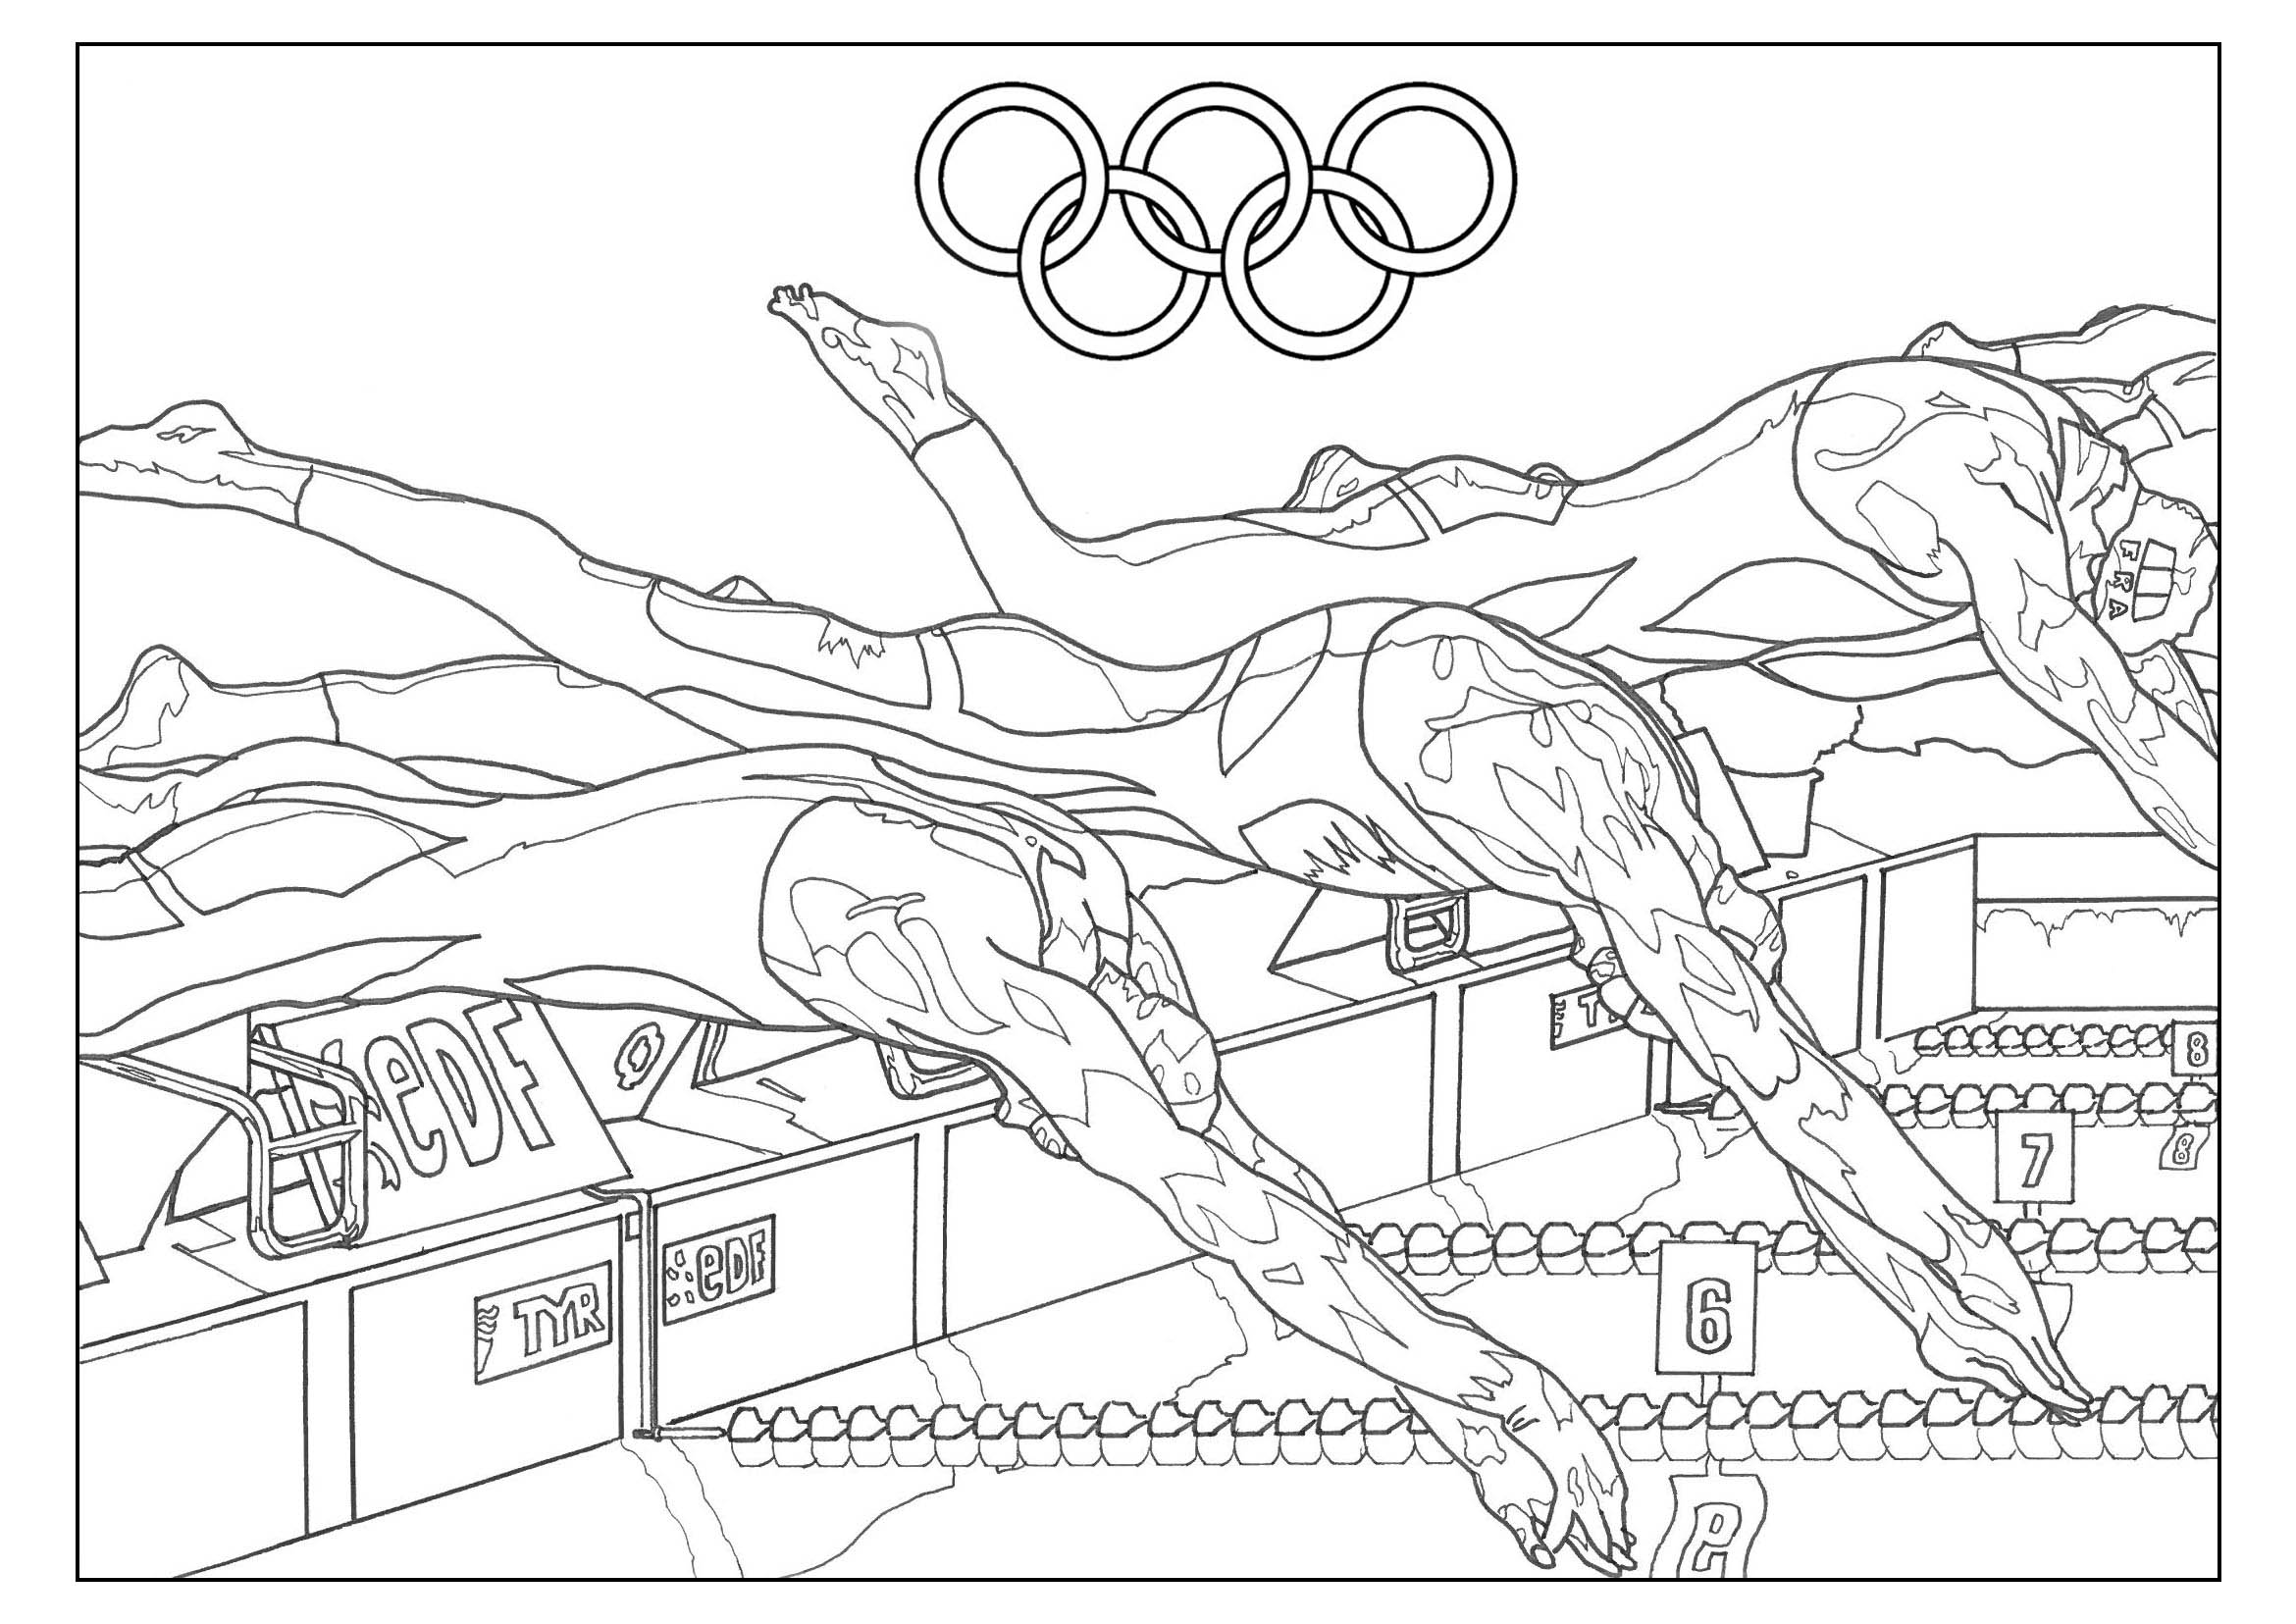 Olympic games : Swimming